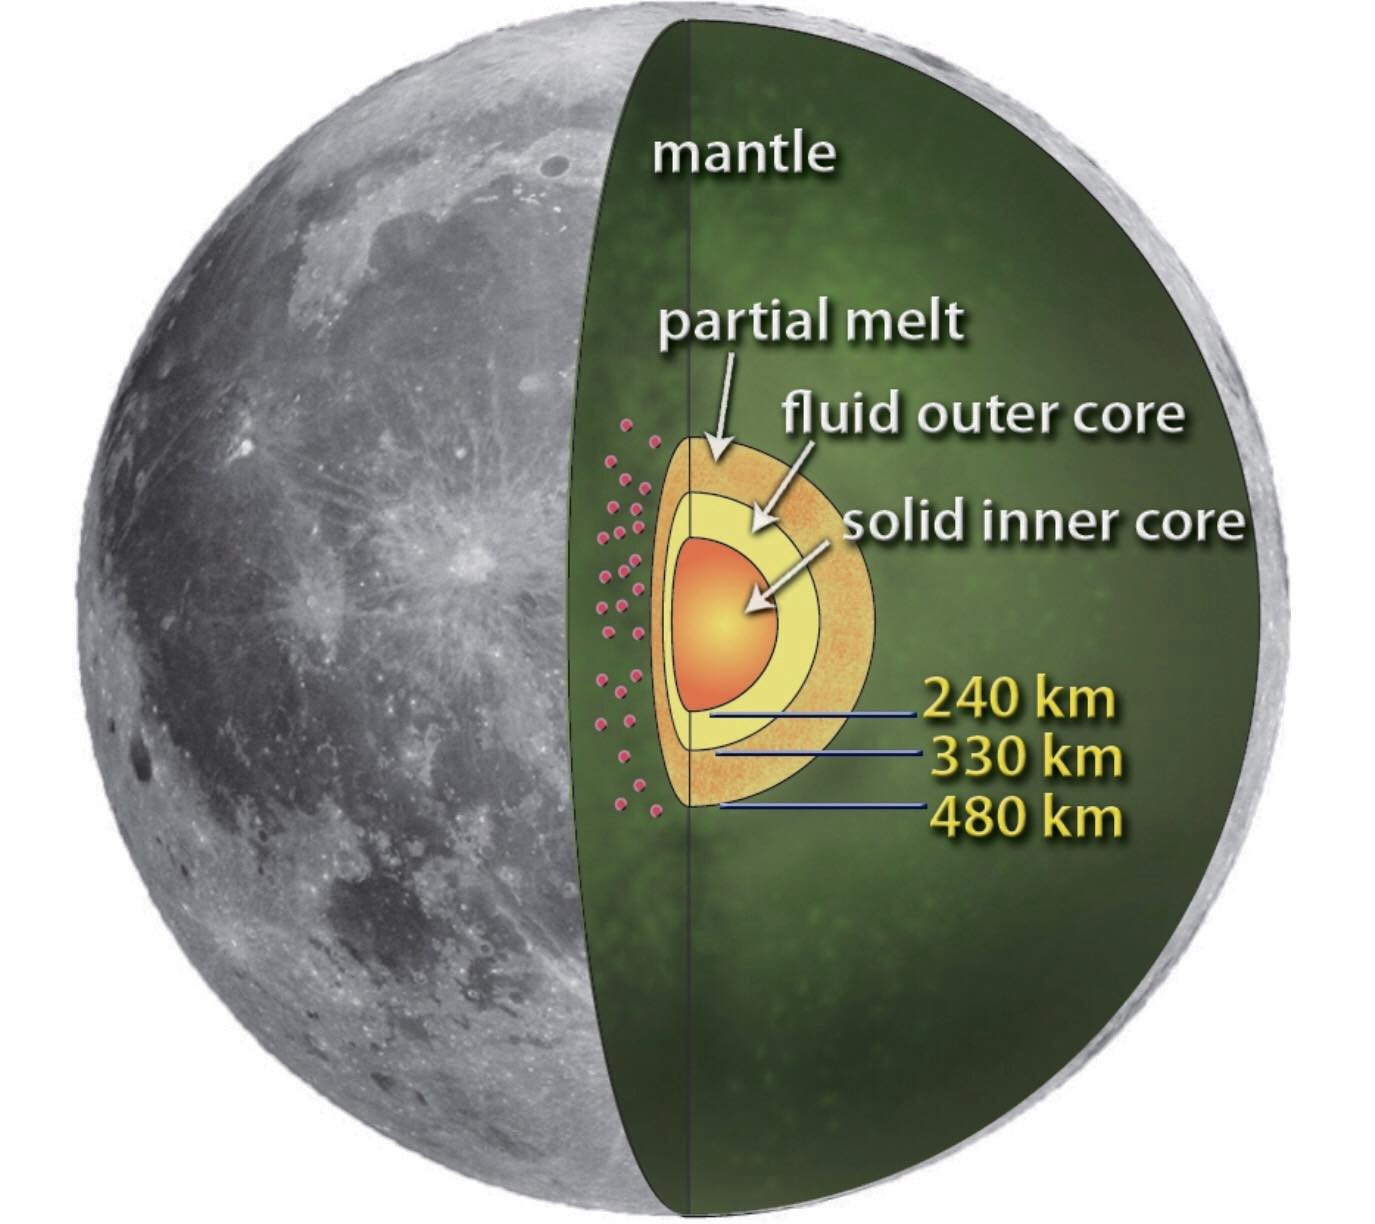 /our-funny-artificial-moon-576c5c6d9930 feature image